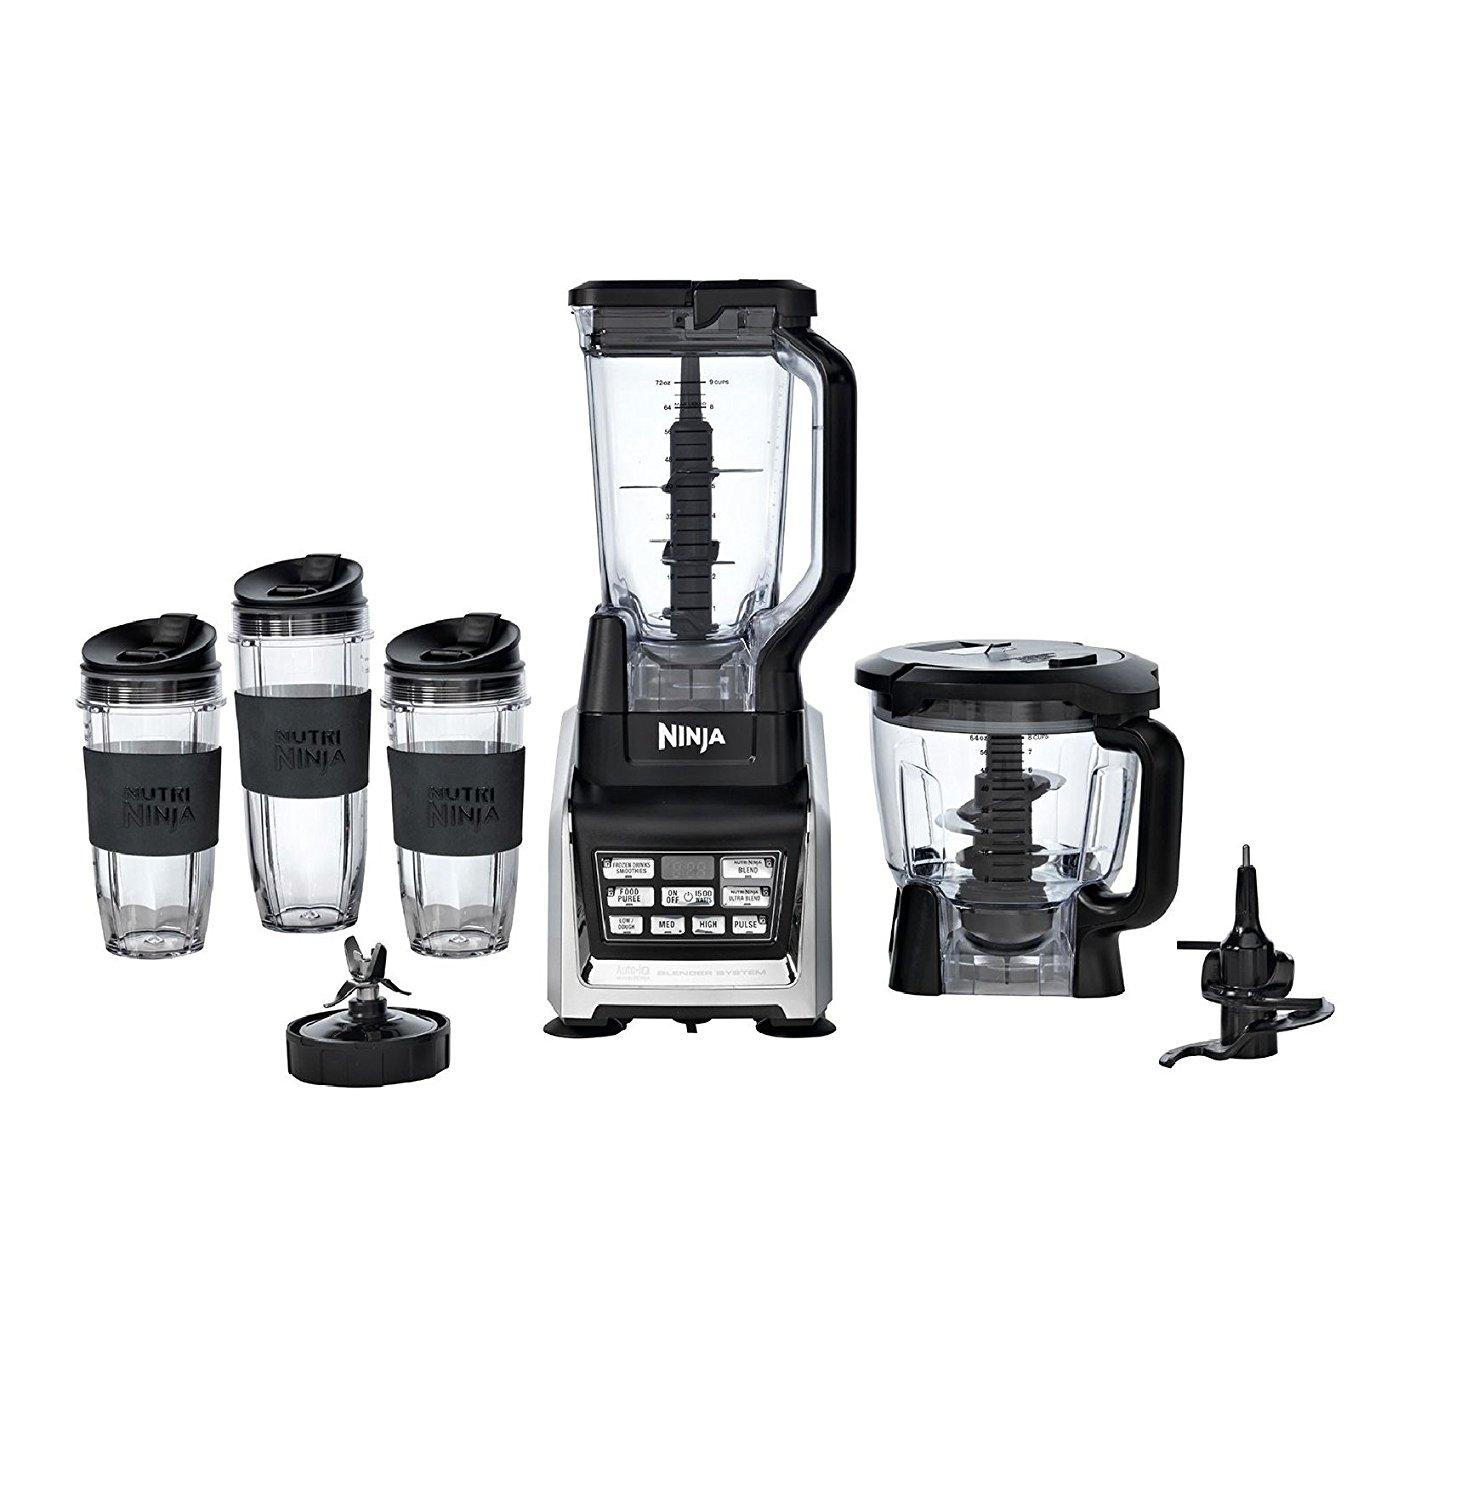 Nutri ninja blender system with auto iq technology - Top Rated Ninja Blender